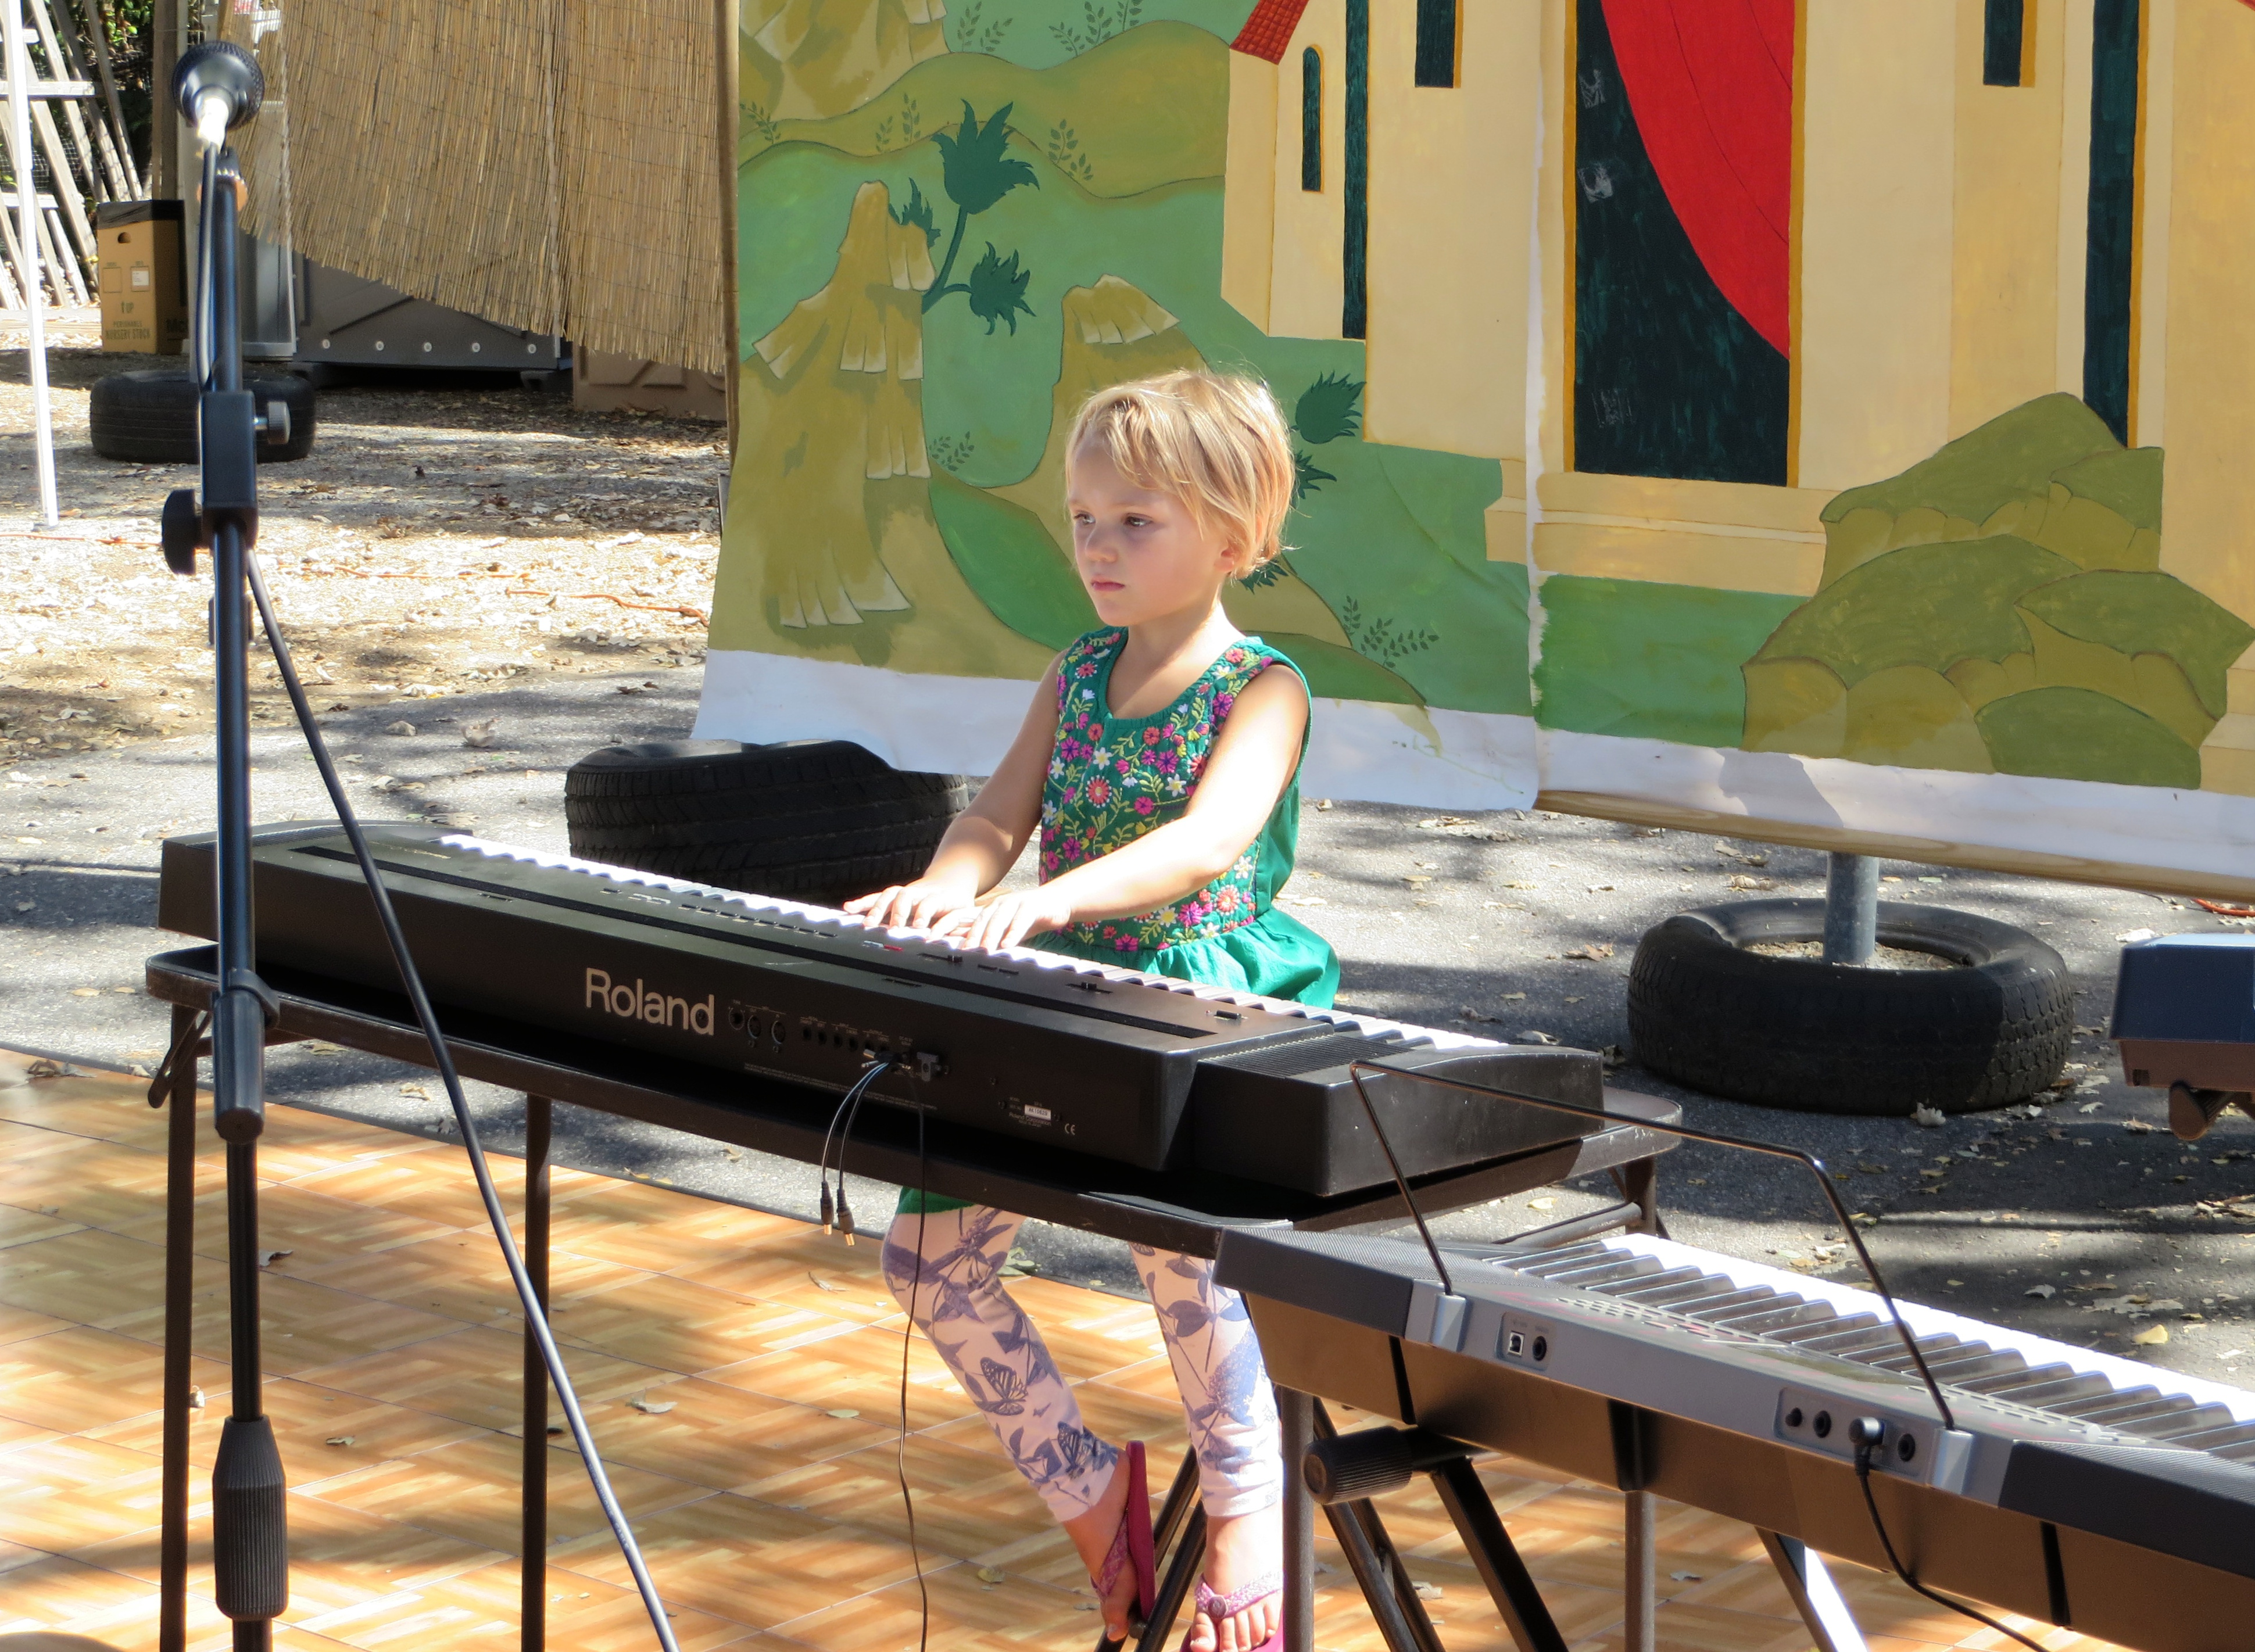 IMG_4935-margo-keyboard.jpg